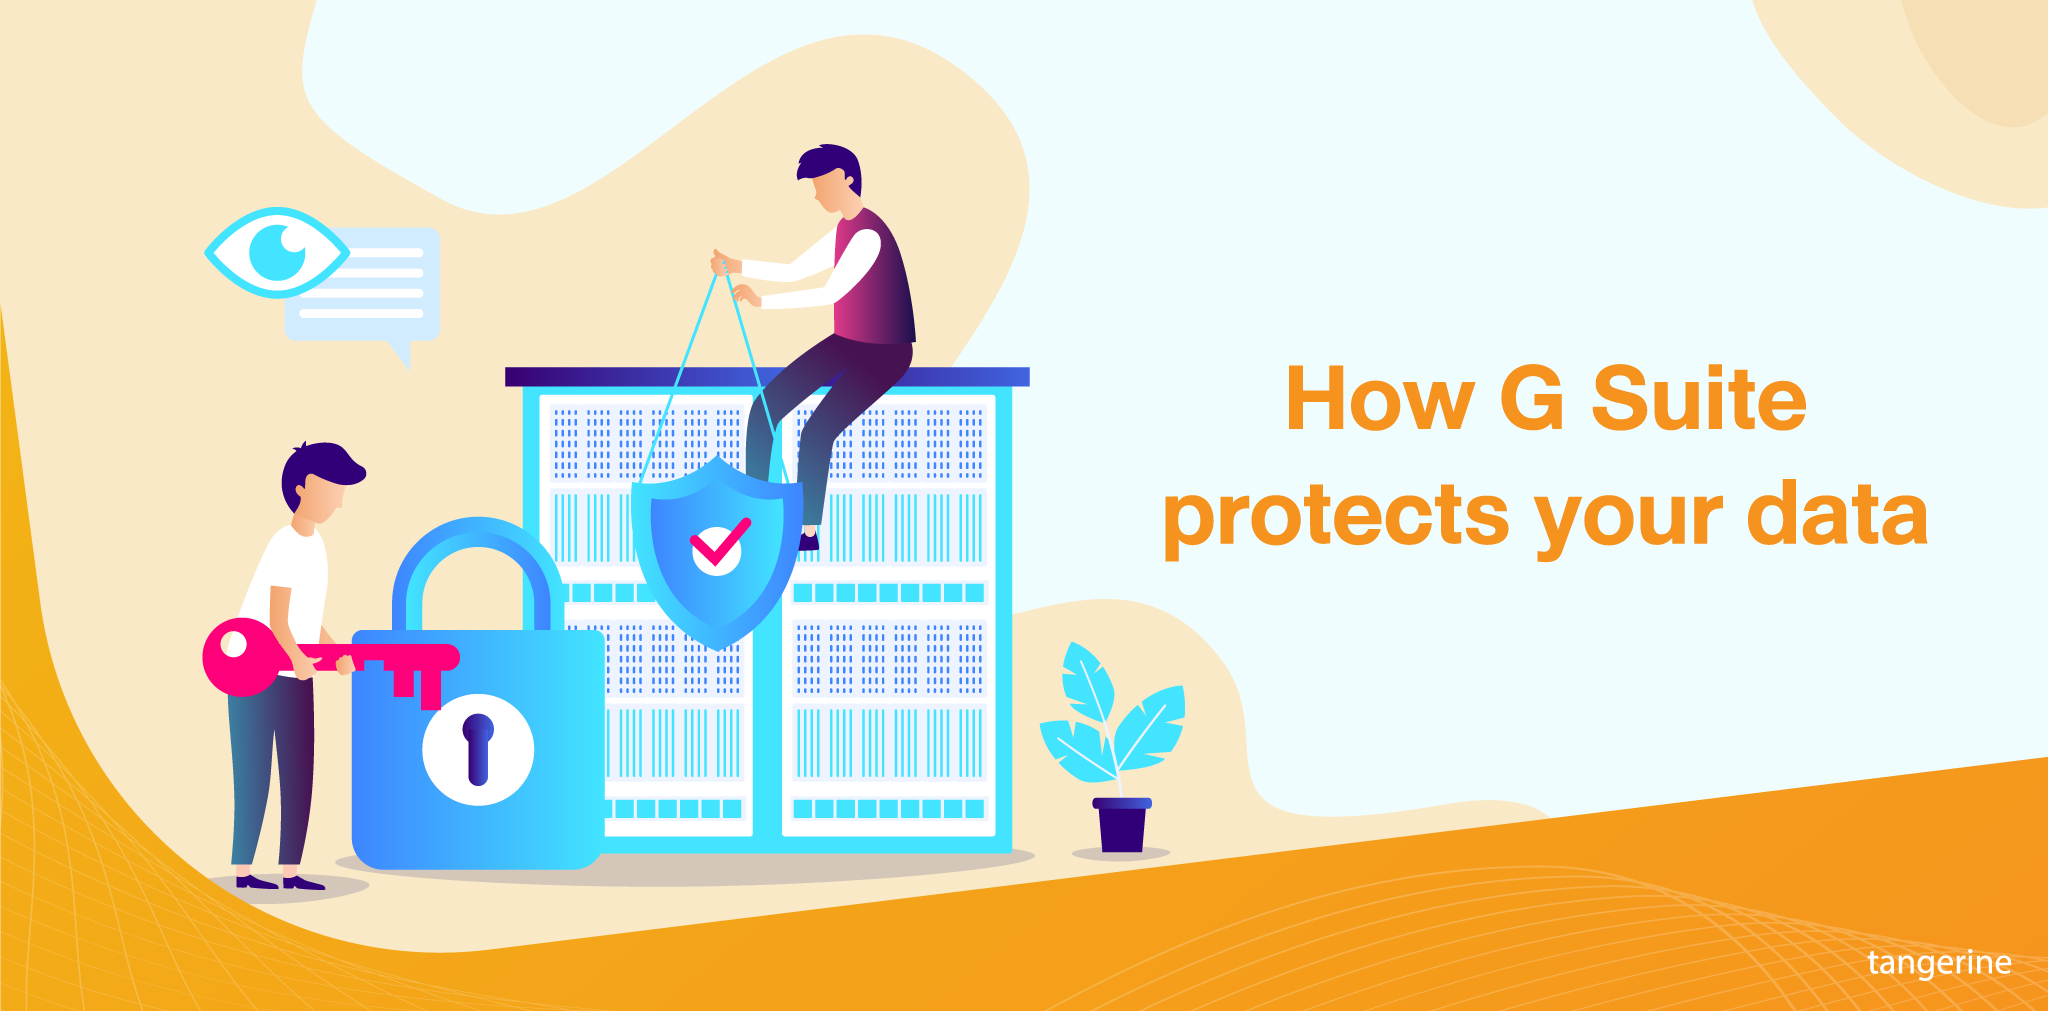 How G Suite protects your data - Tangerine